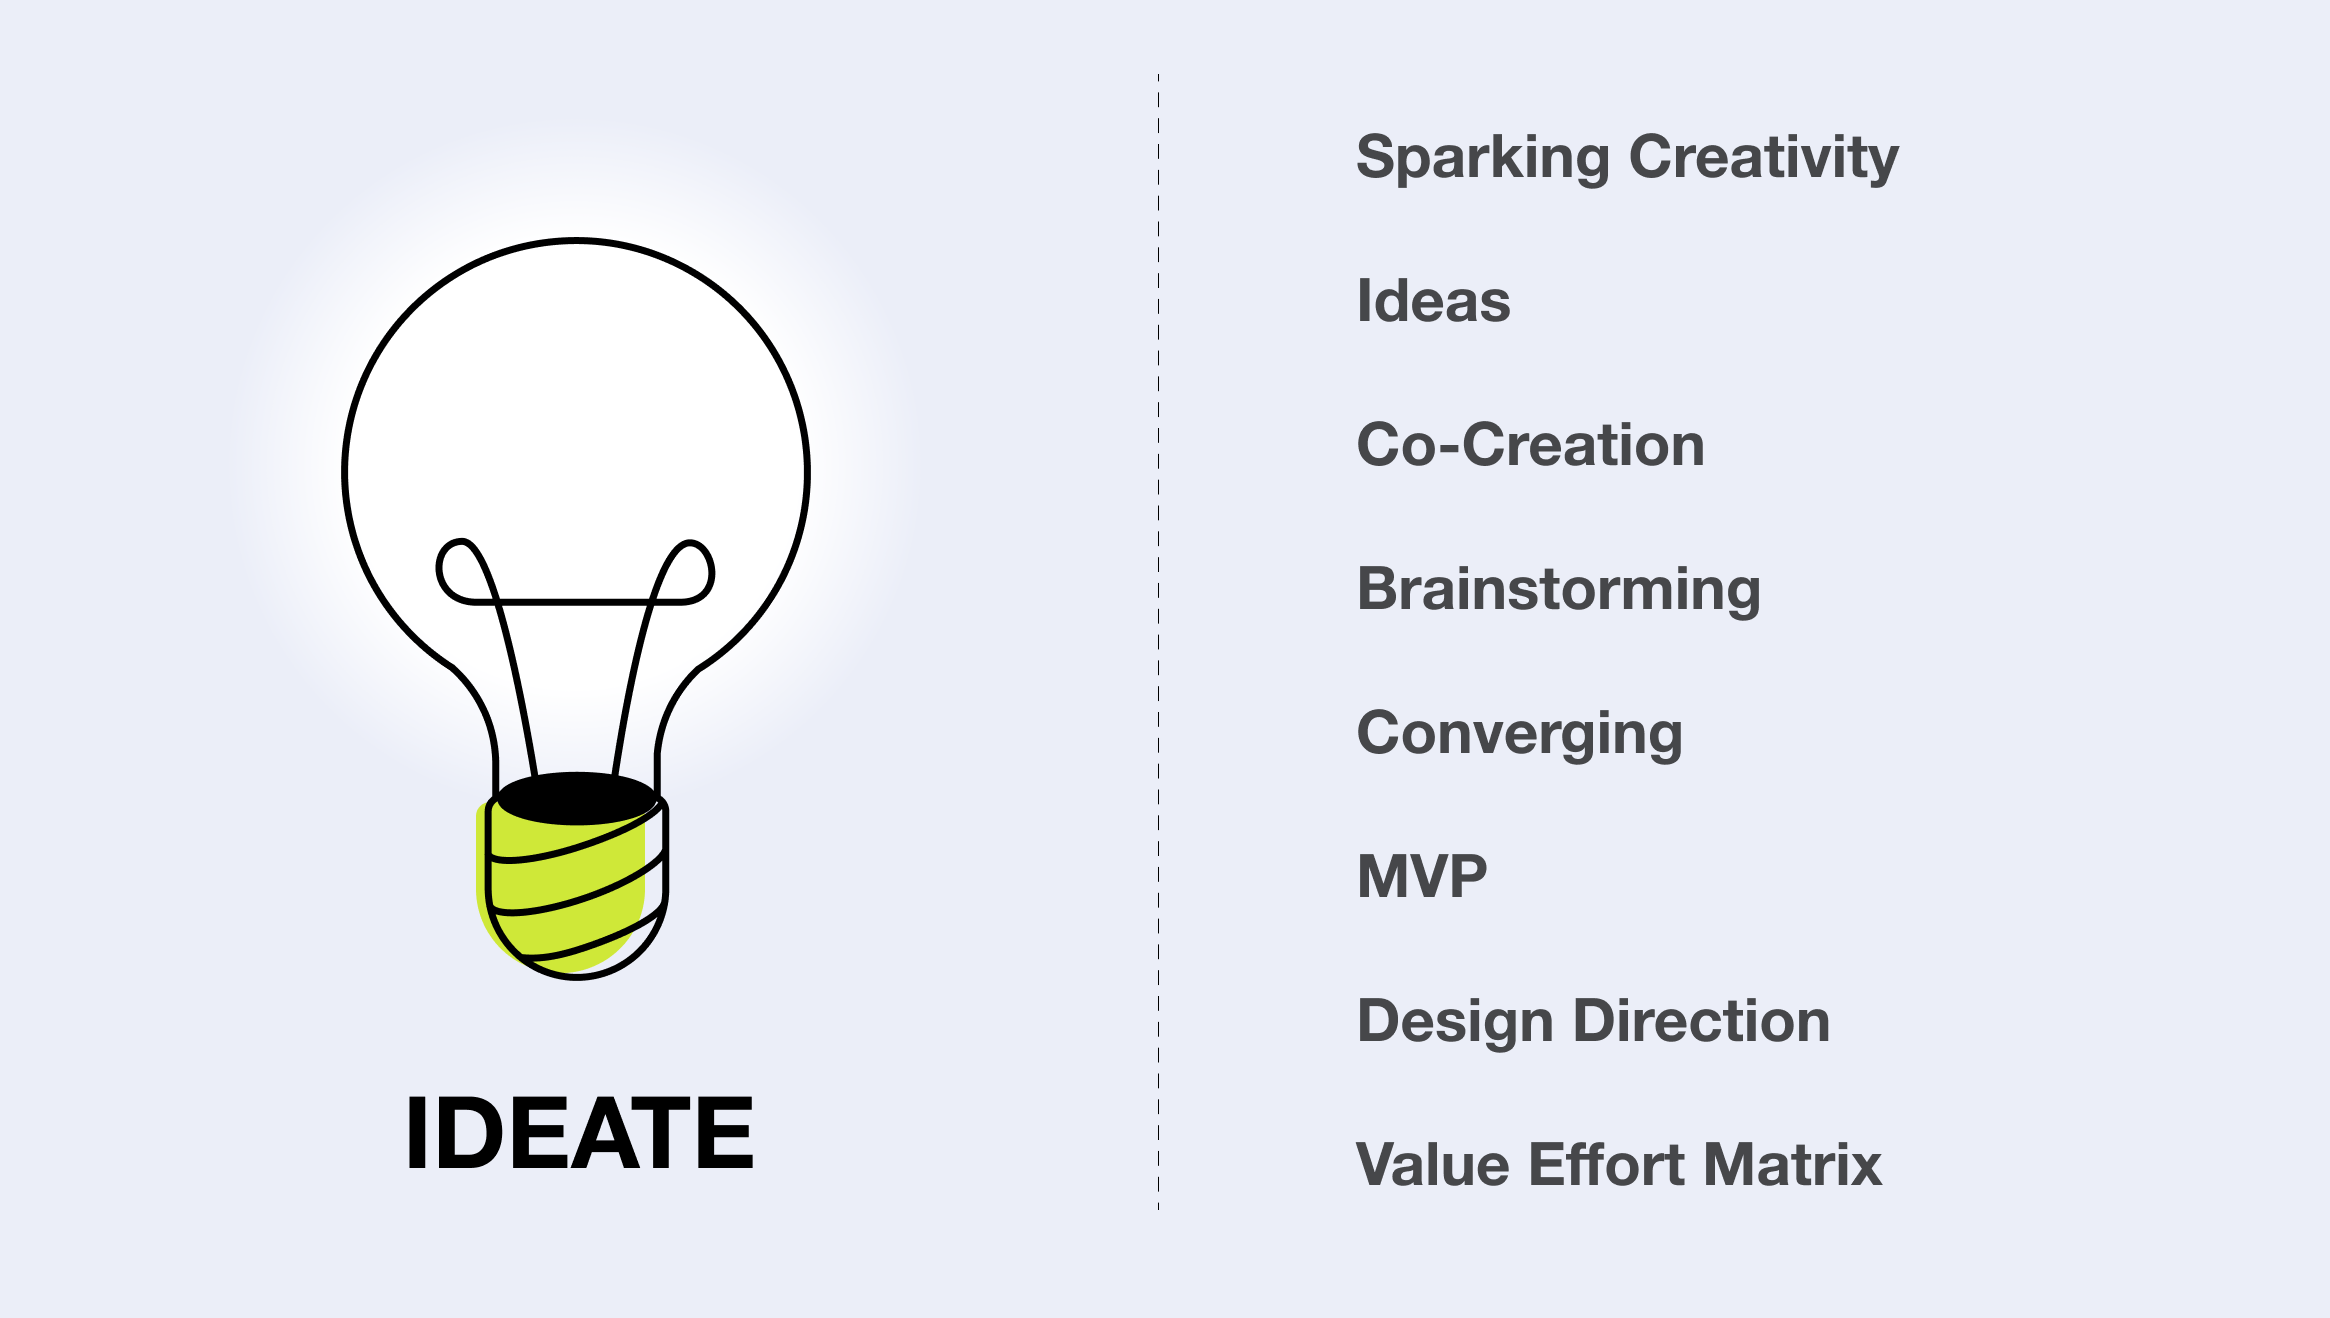 The main task of the Ideation phase in ux ui design proces is to generate as many ideas as possible